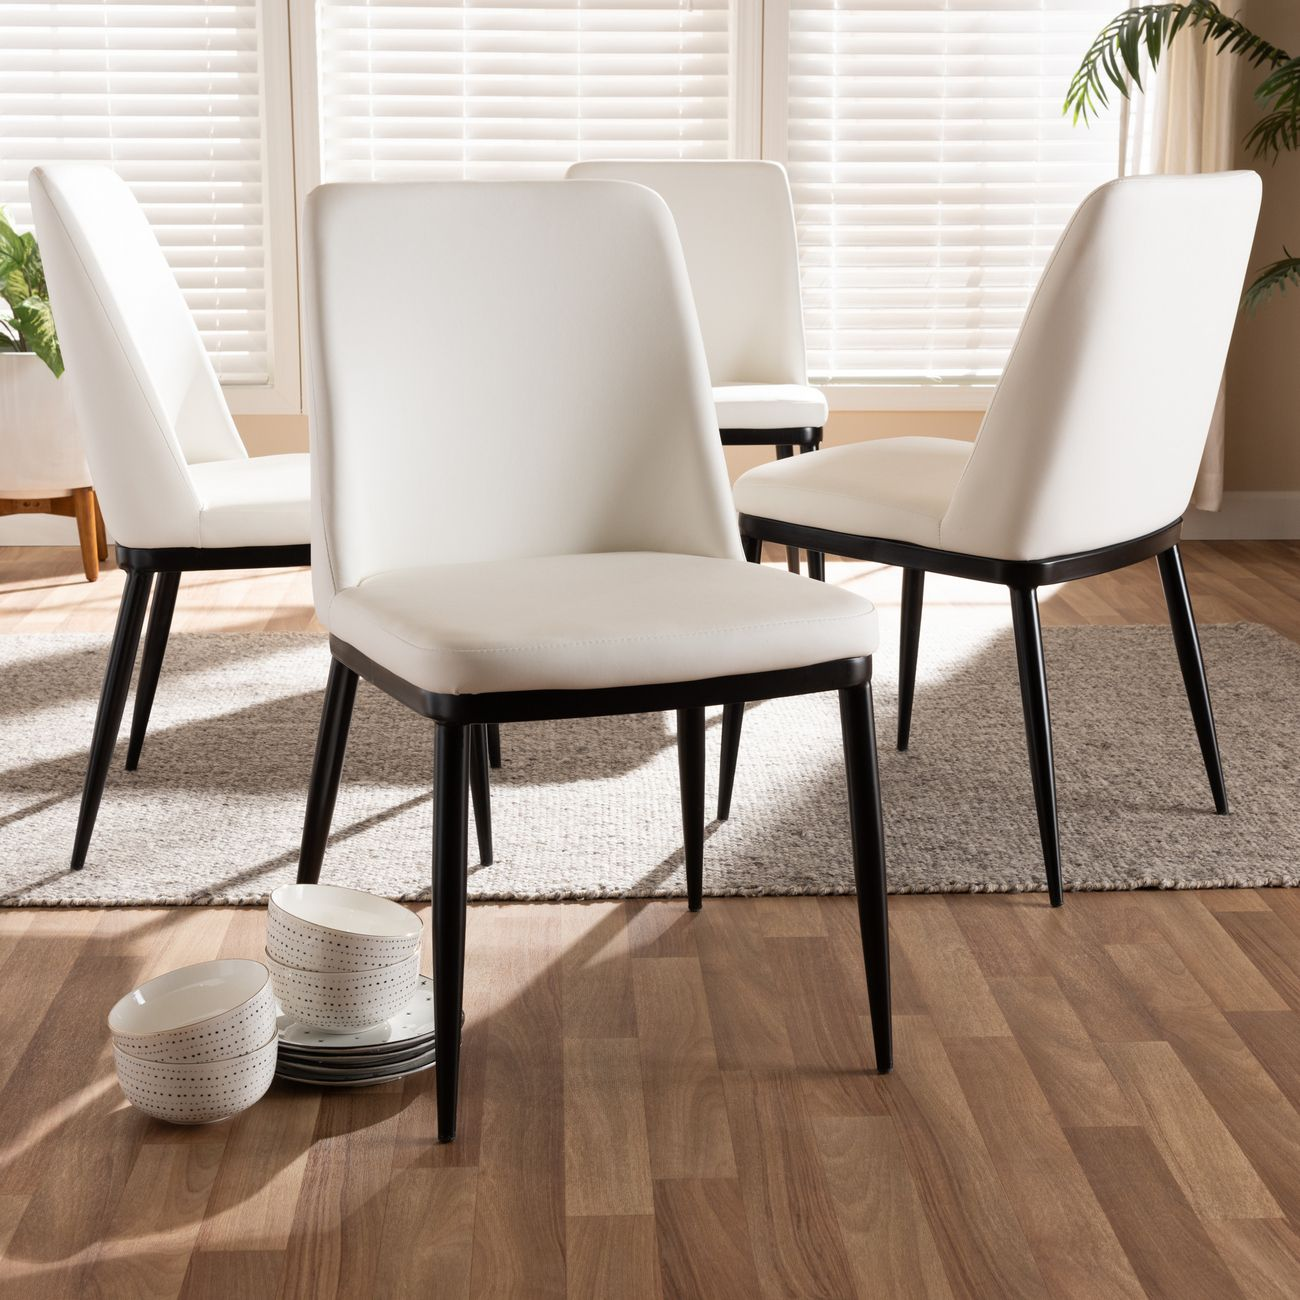 Picture of: Baxton Studio Darcell Modern Contemporary White Faux Leather Upholstered Dining Chair Set Of 4 150595 White